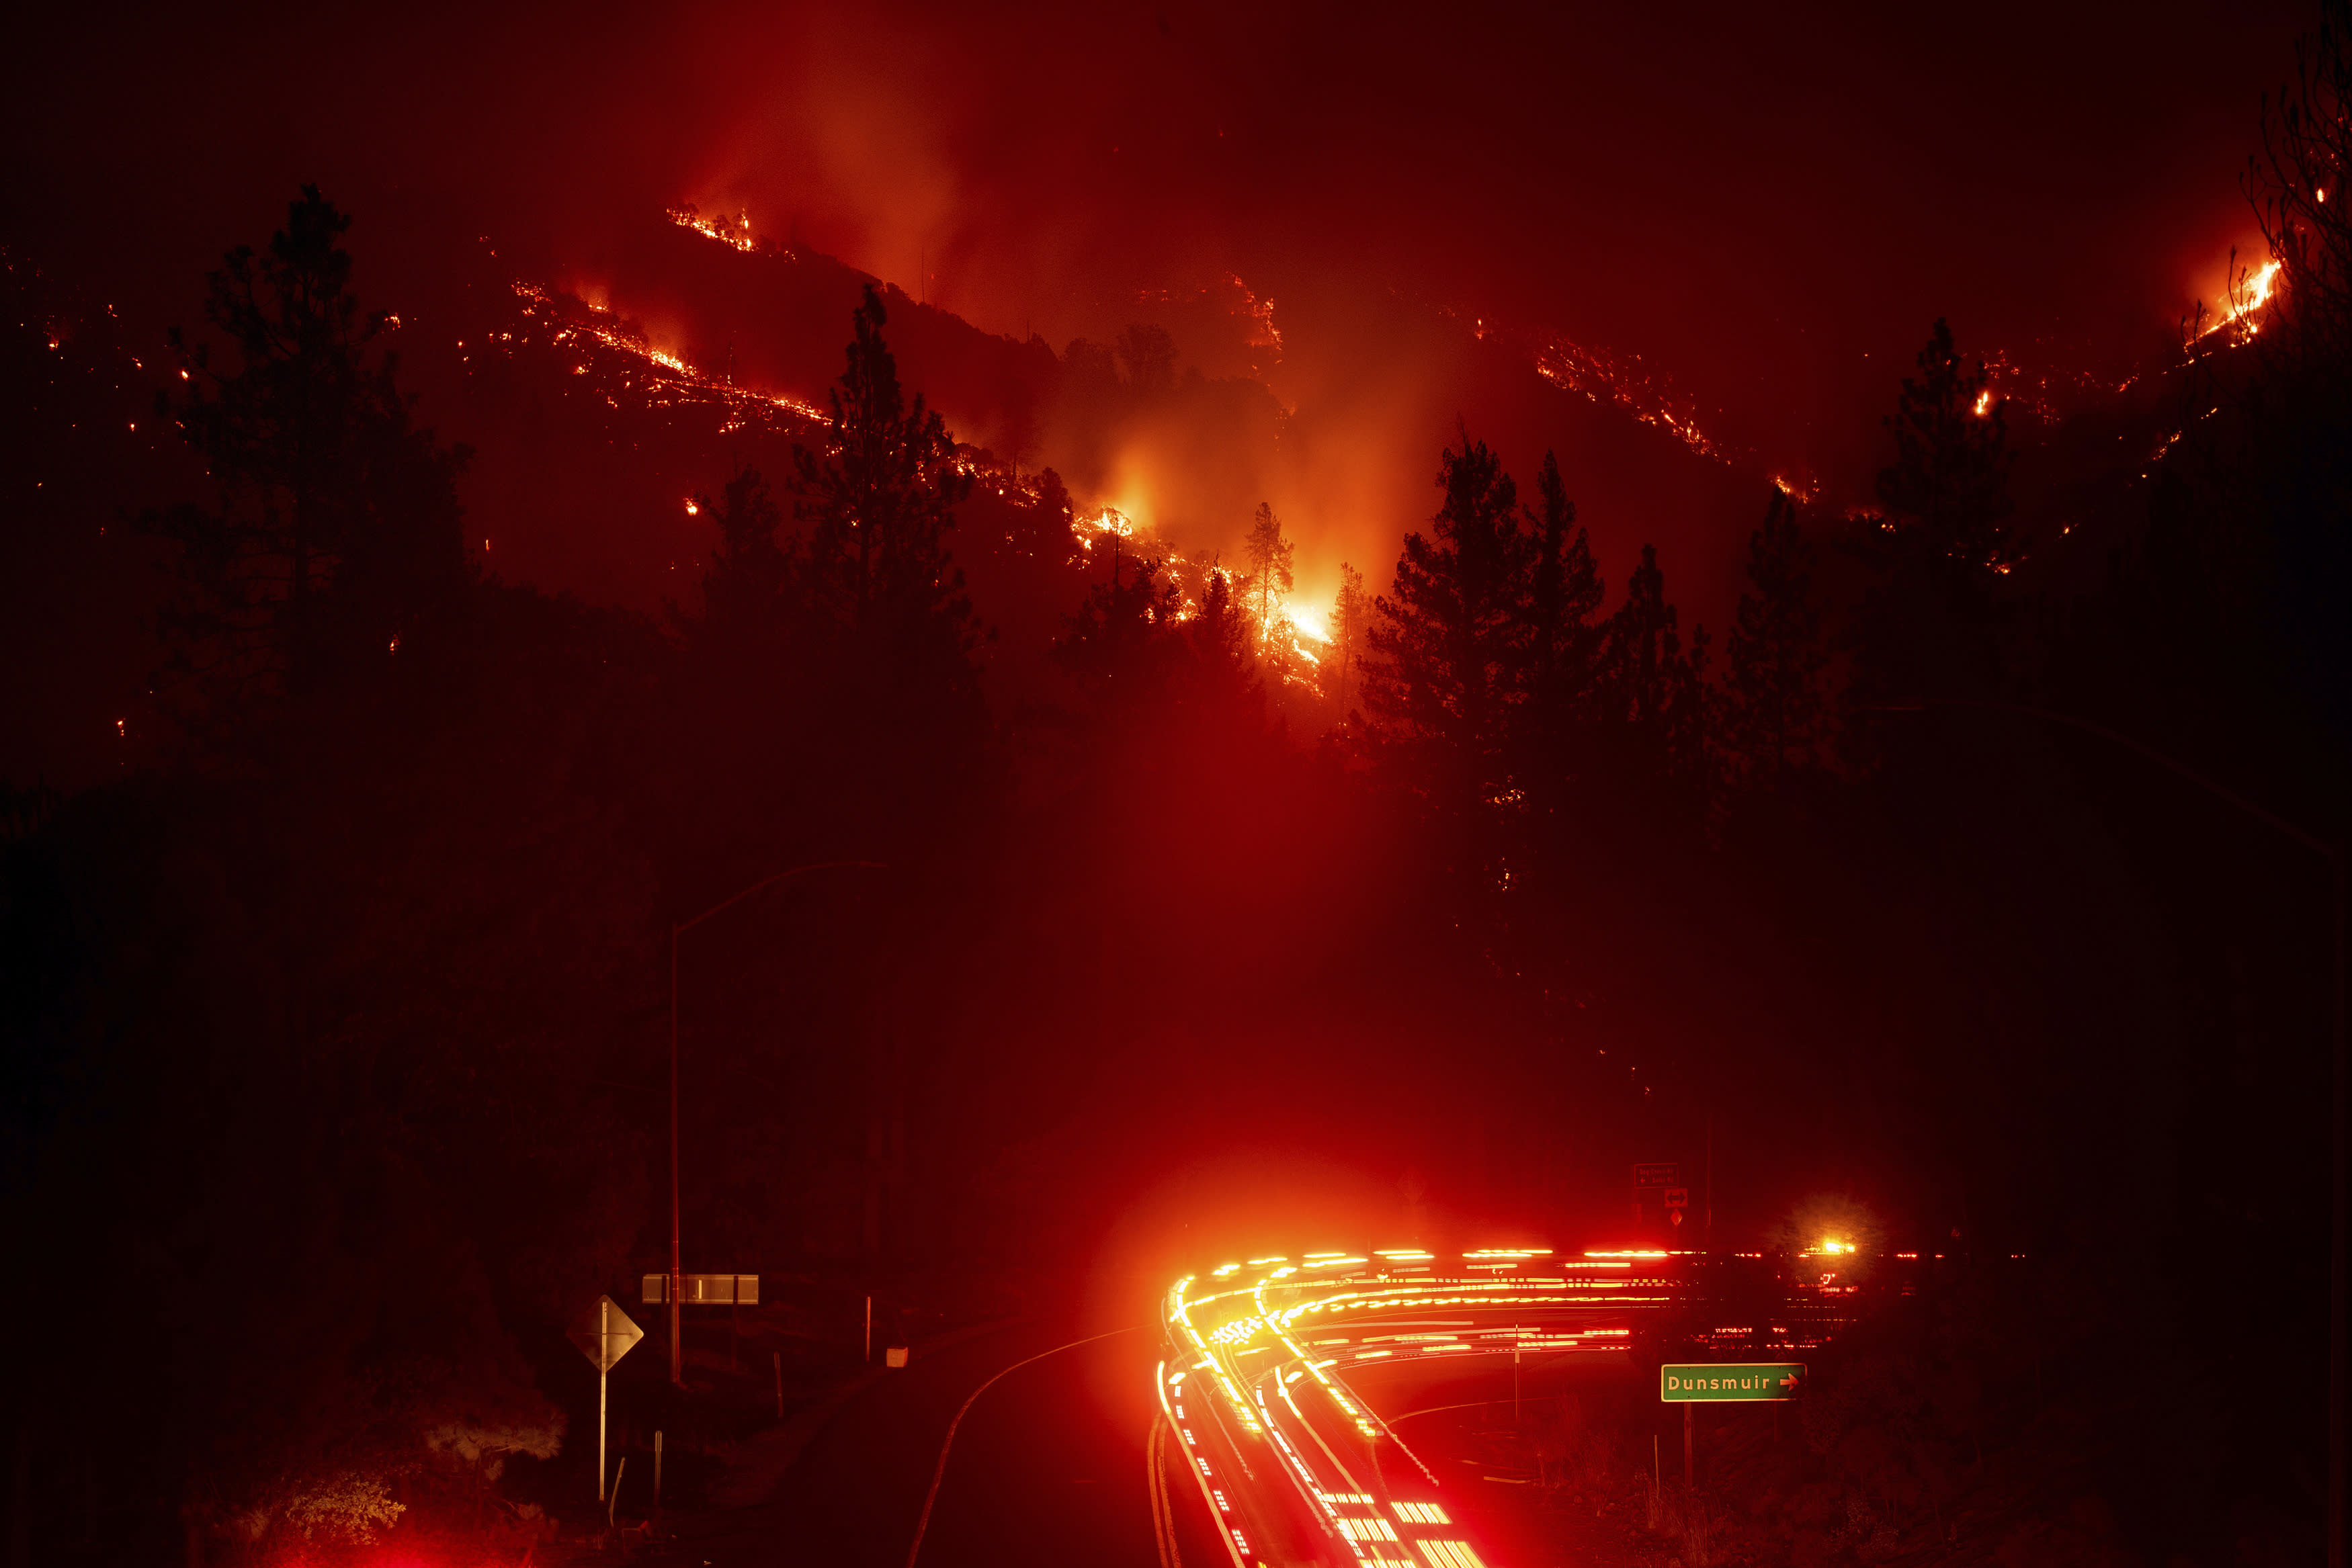 California takes financial wallop from unrelenting wildfires